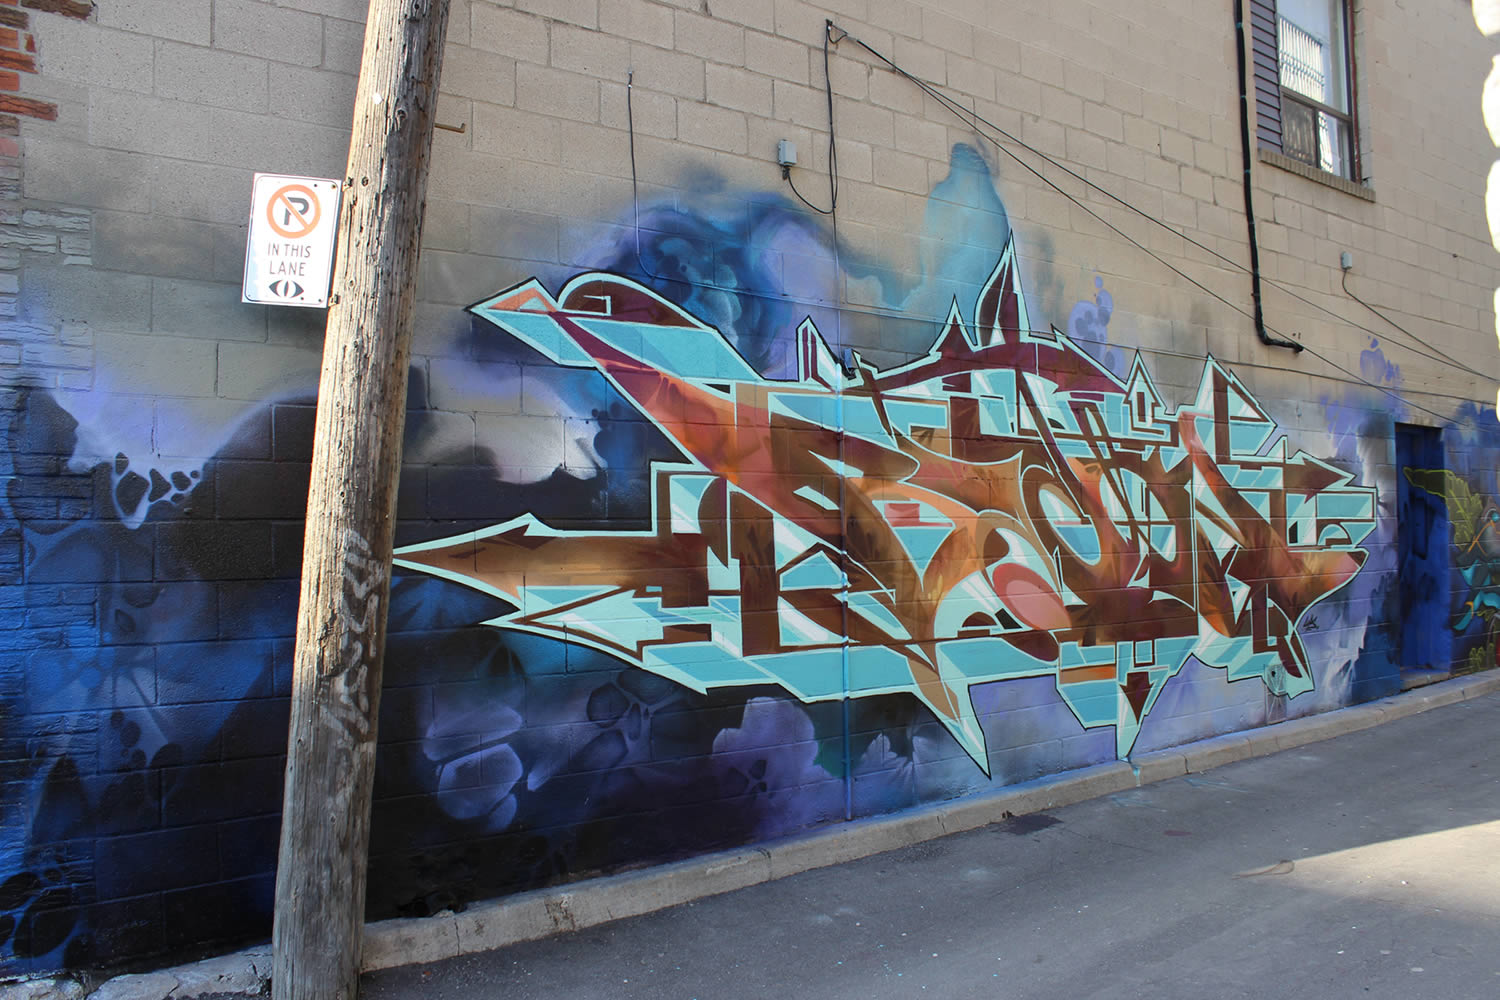 side view of bacon's graffiti art